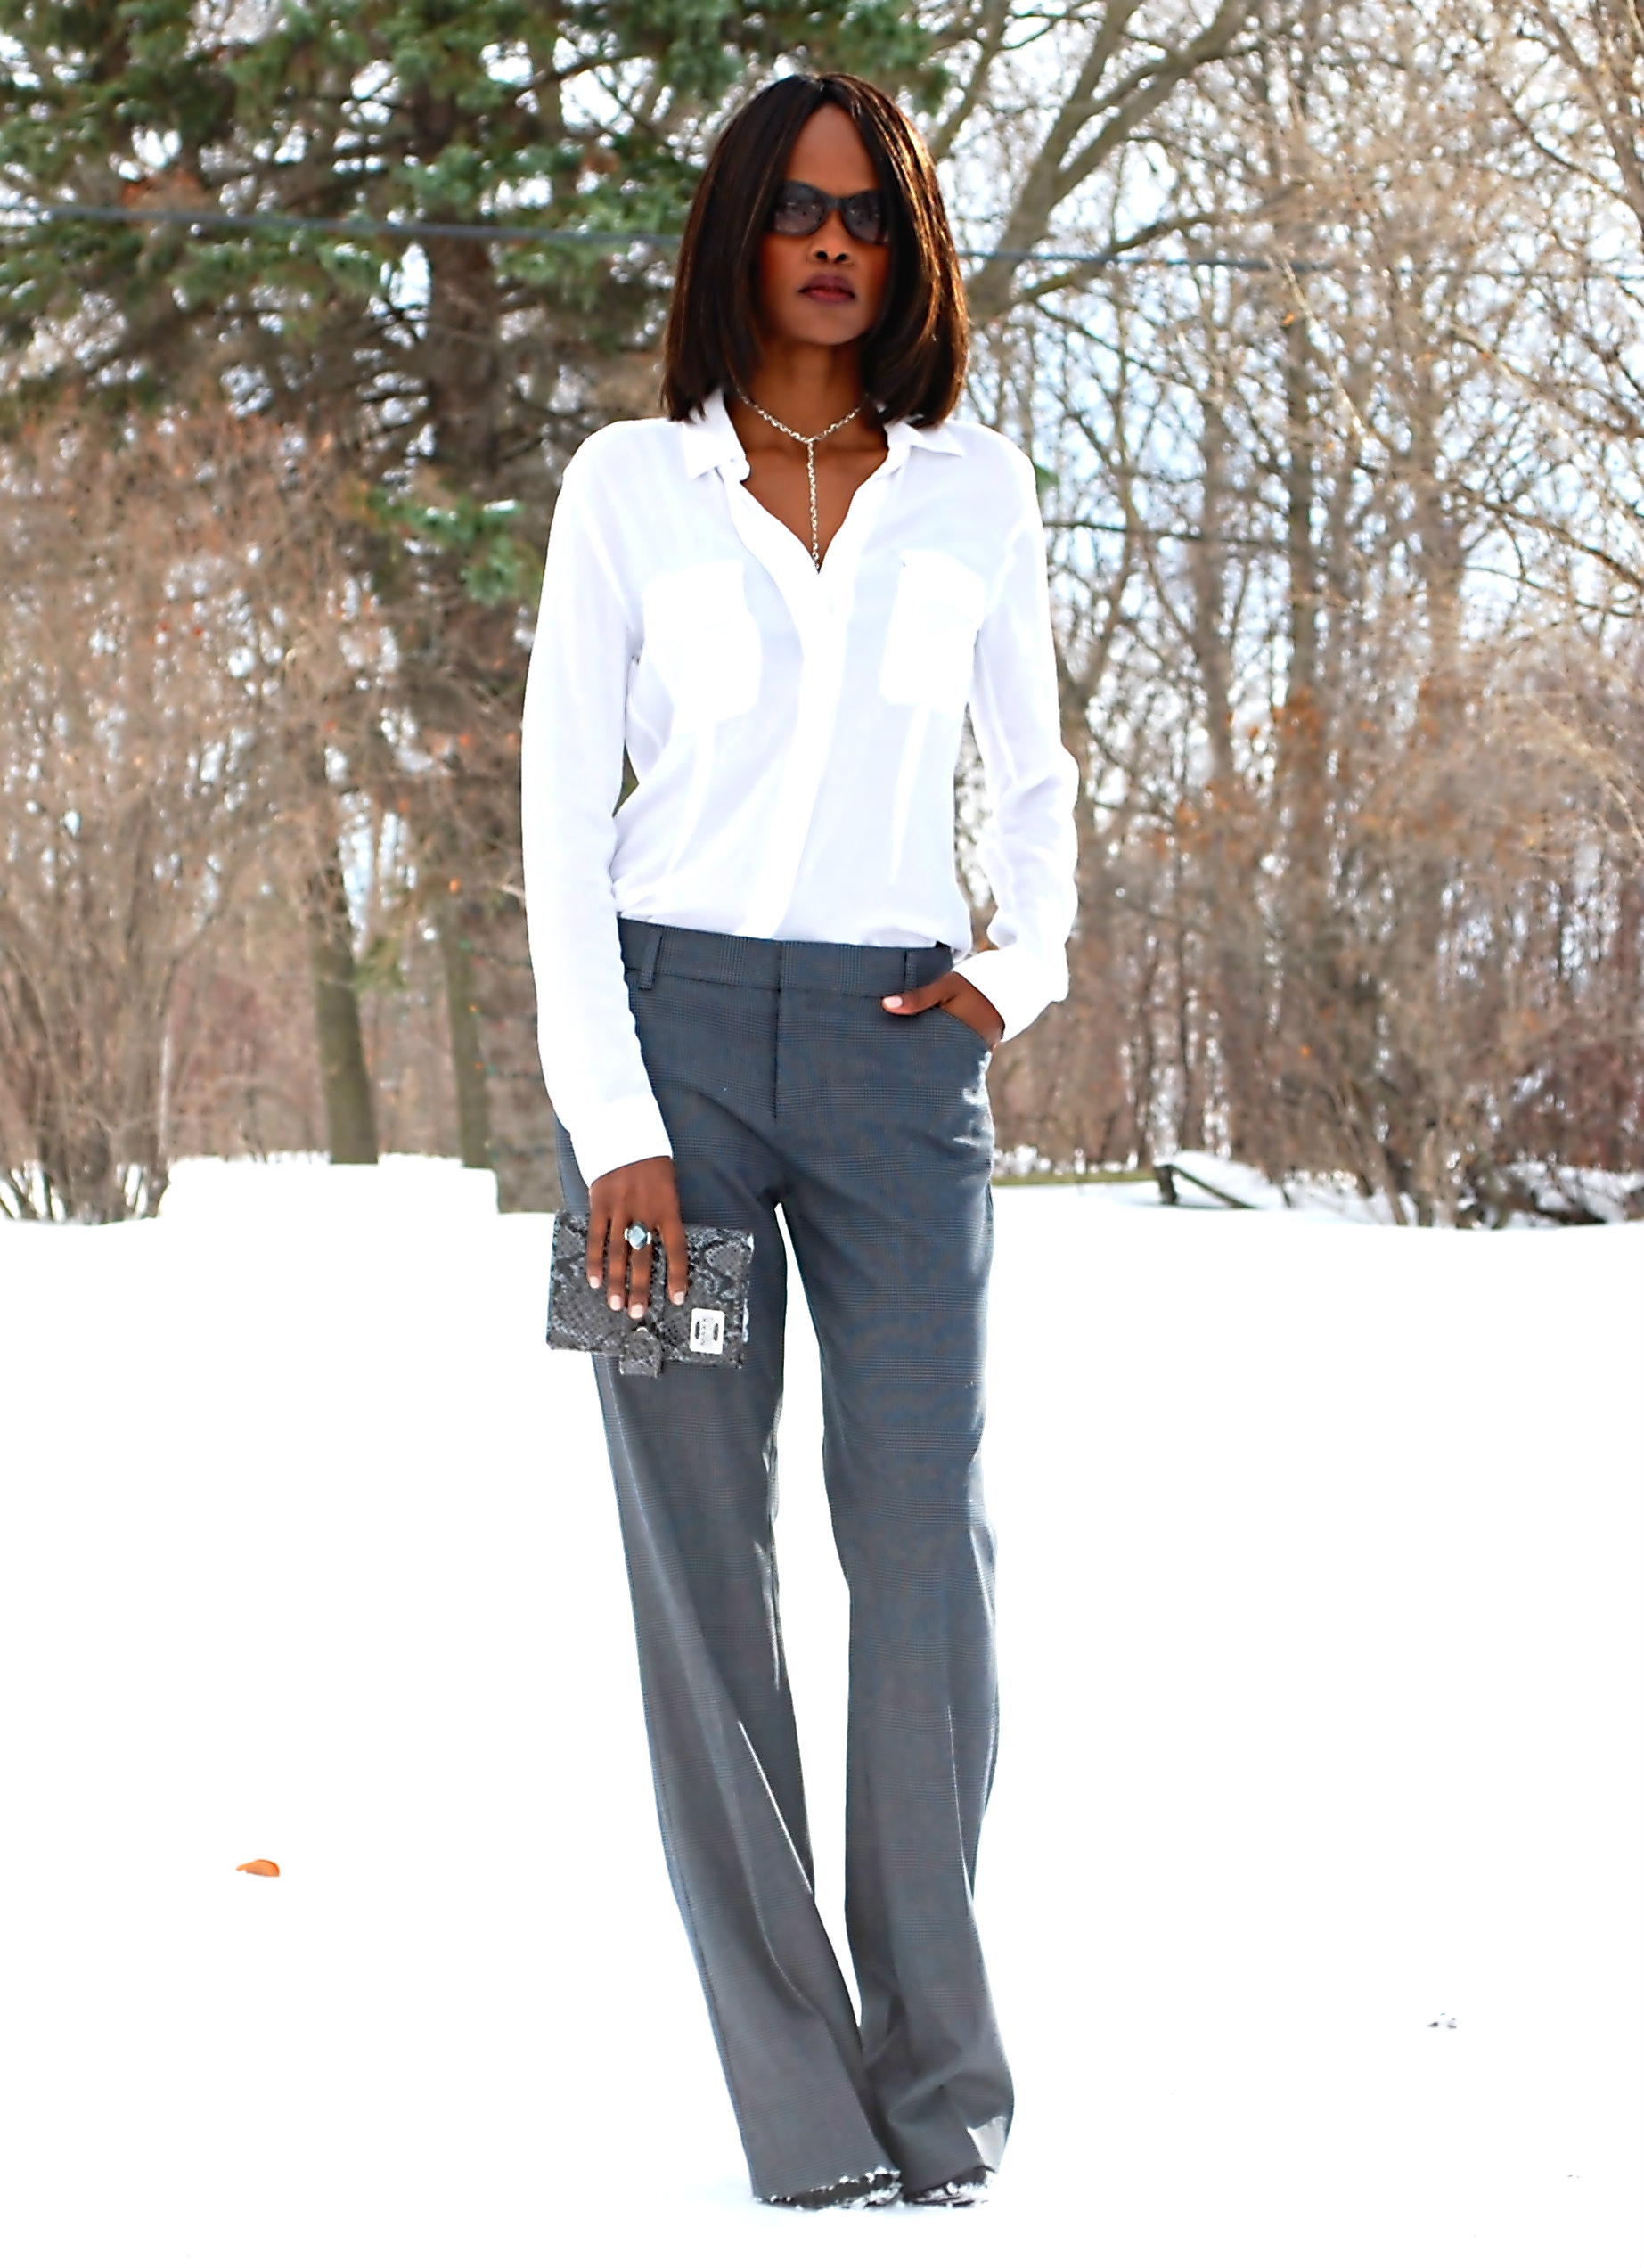 Outfit Of The Day: Wide-leg Pants